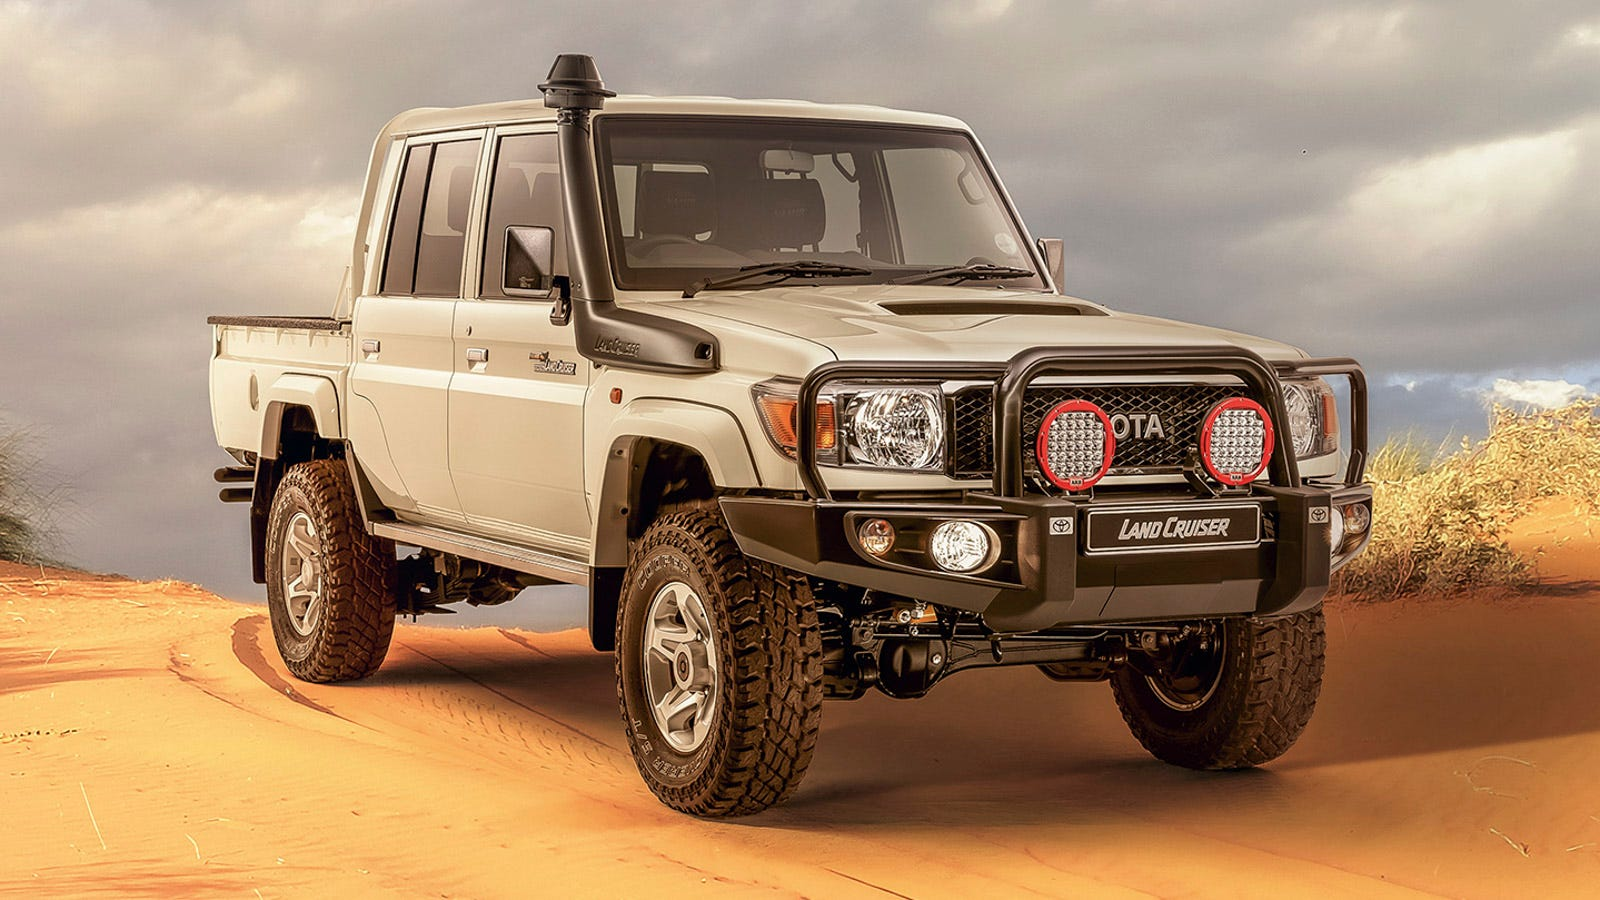 The Best 2019 Toyota Land Cruiser Is Not For Sale In America, Of Course